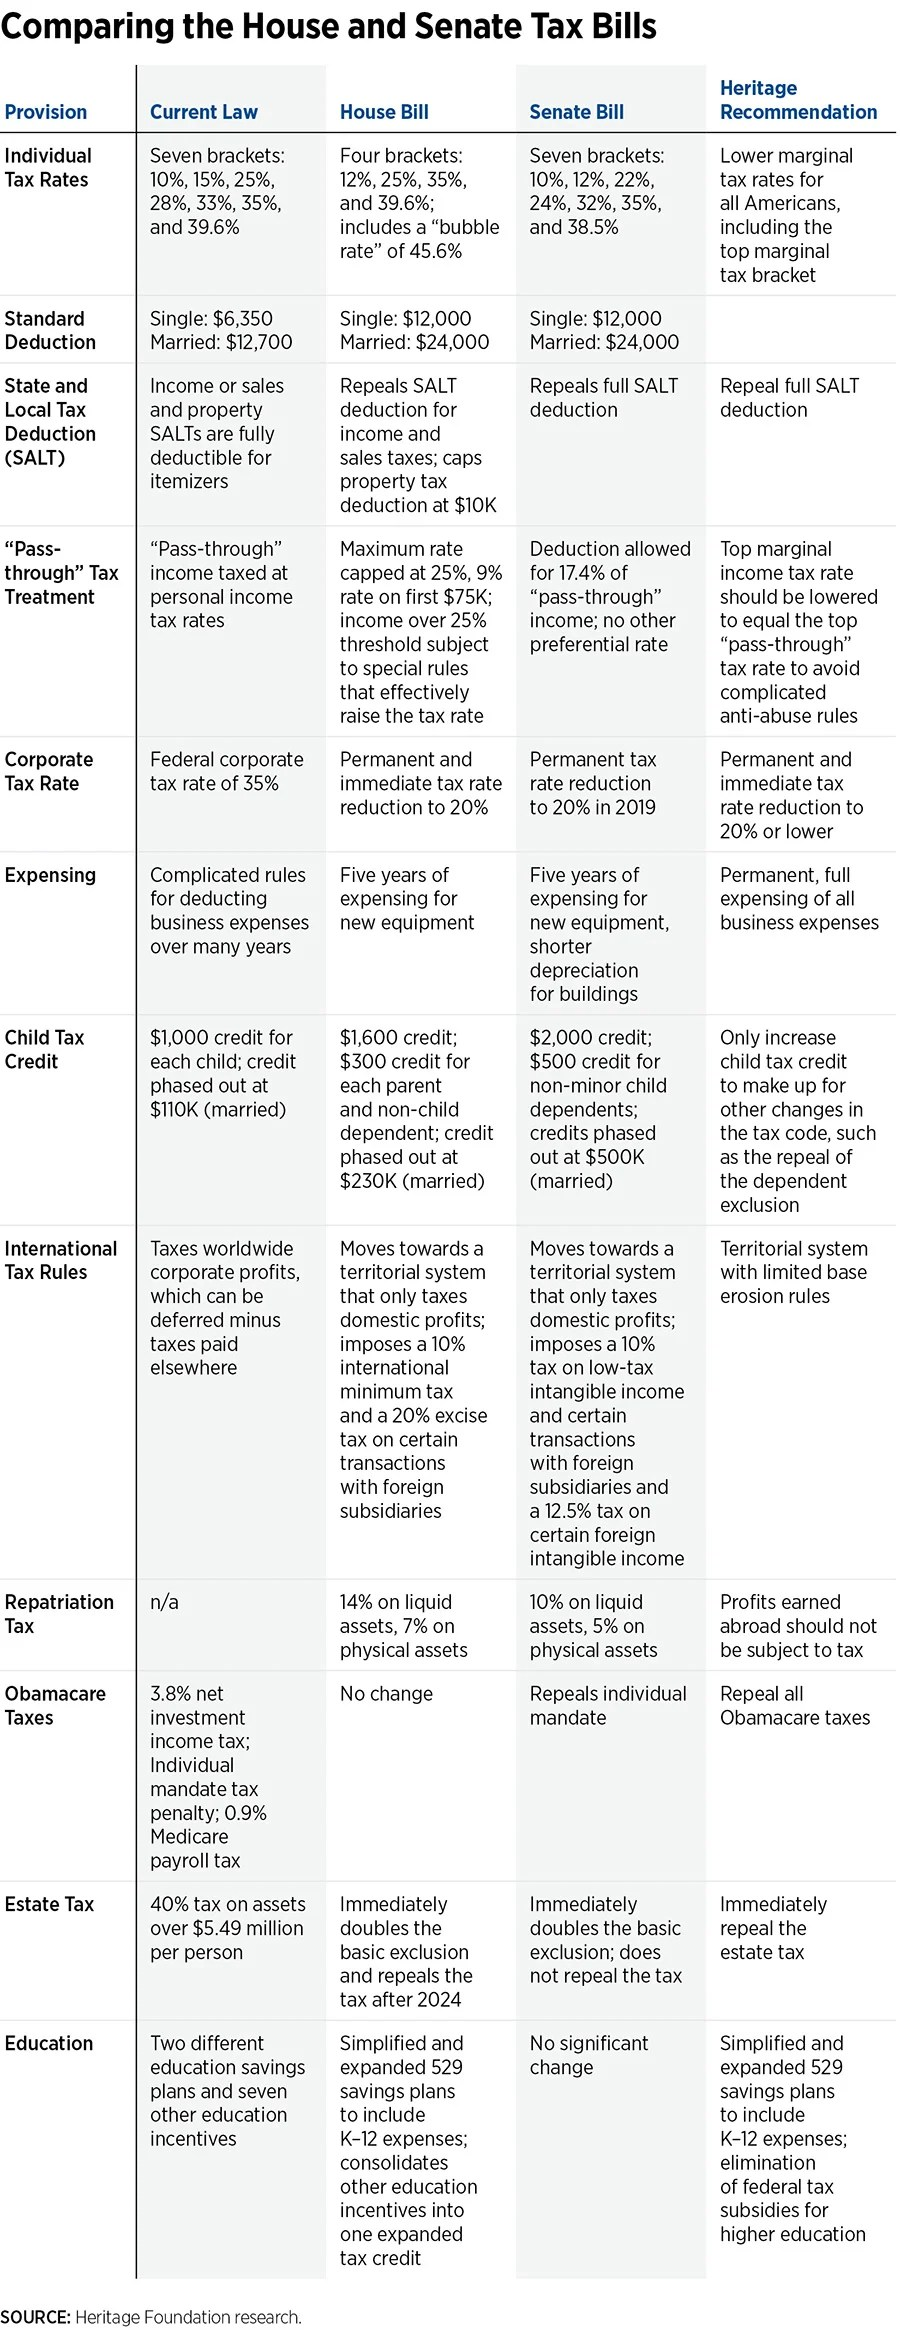 In 1 Chart, the Differences Between the House and Senate Tax Reform Bills